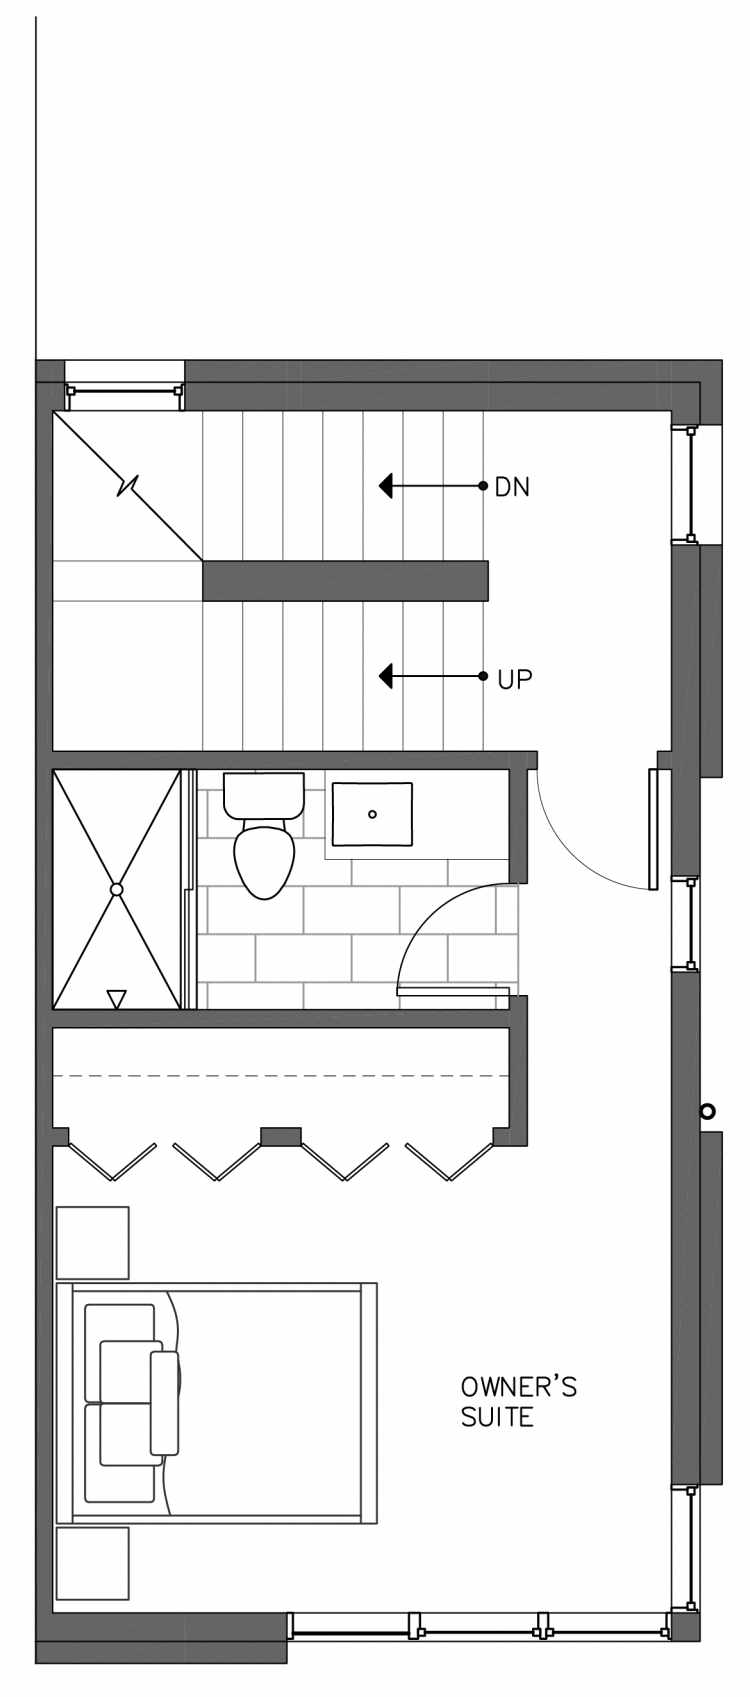 Third Floor Plan of 3236A 14th Ave W, One of the Harloe Townhomes in North Queen Anne by Isola Homes